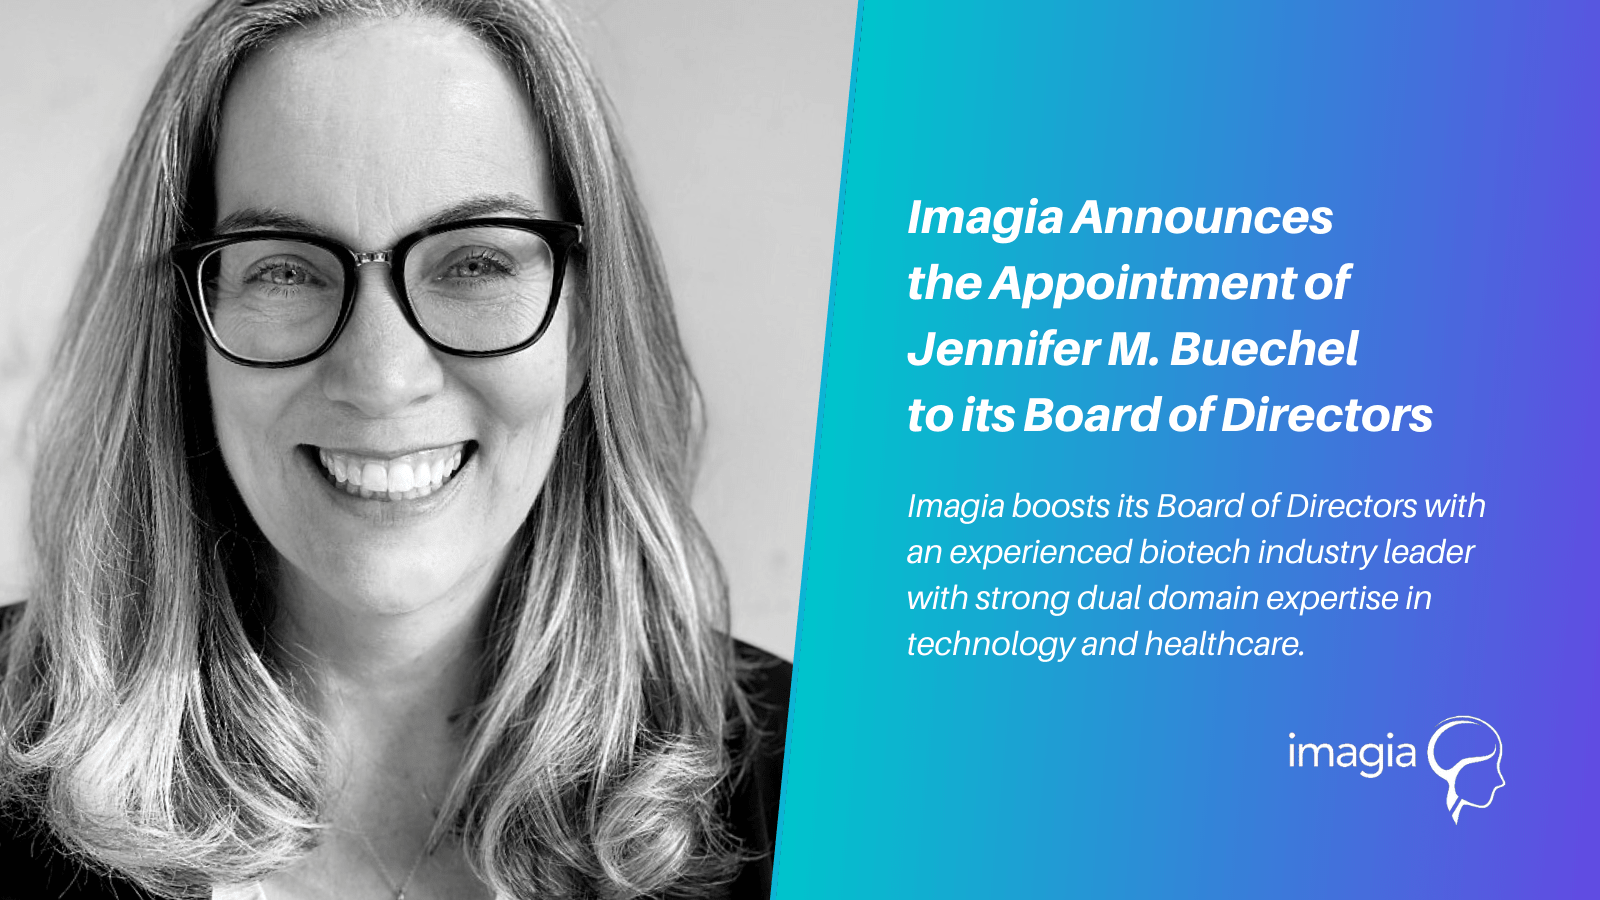 Imagia Announces the Appointment of Jennifer M. Buechel to its Board of Directors